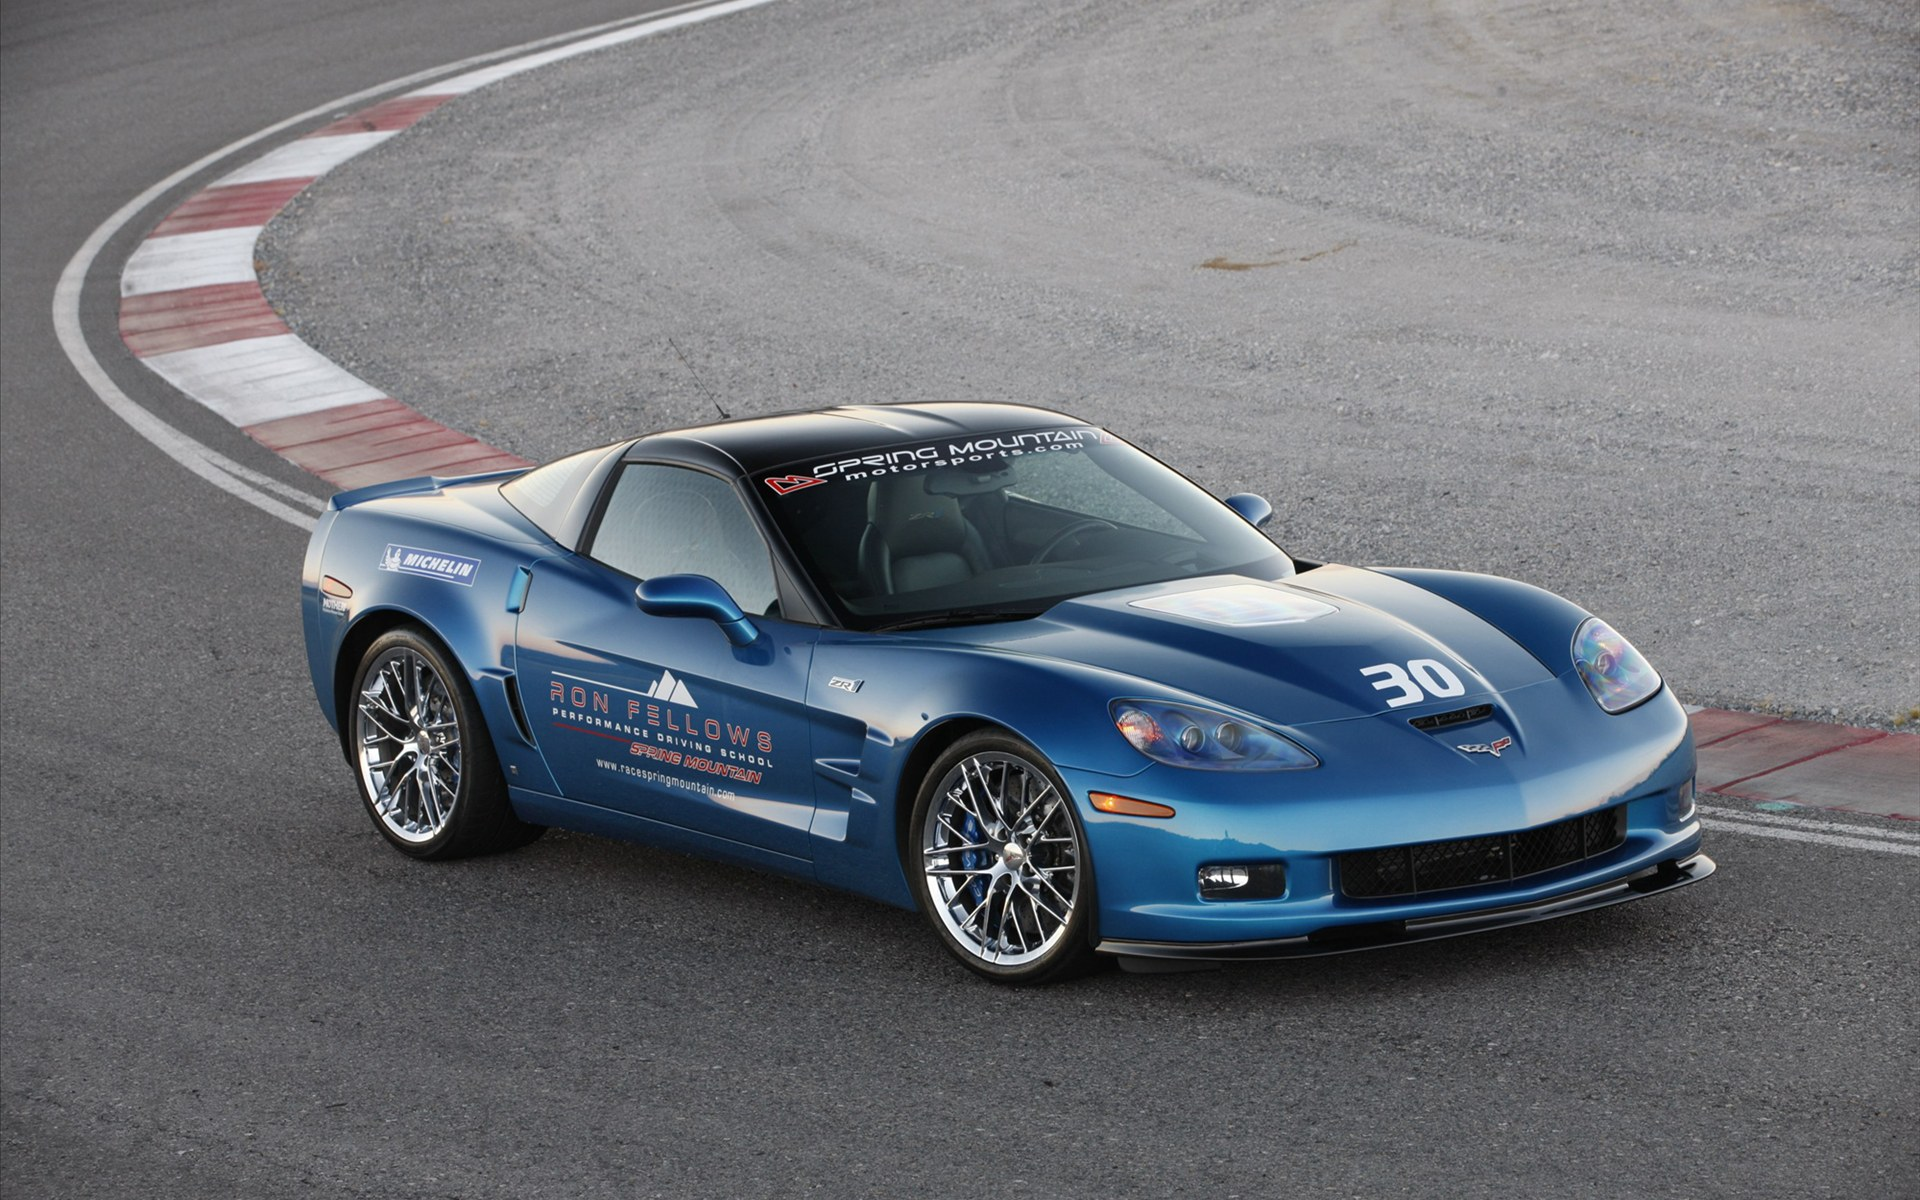 Chevrolet Corvette Zr1 2012 Wallpaper Hd Car Wallpapers